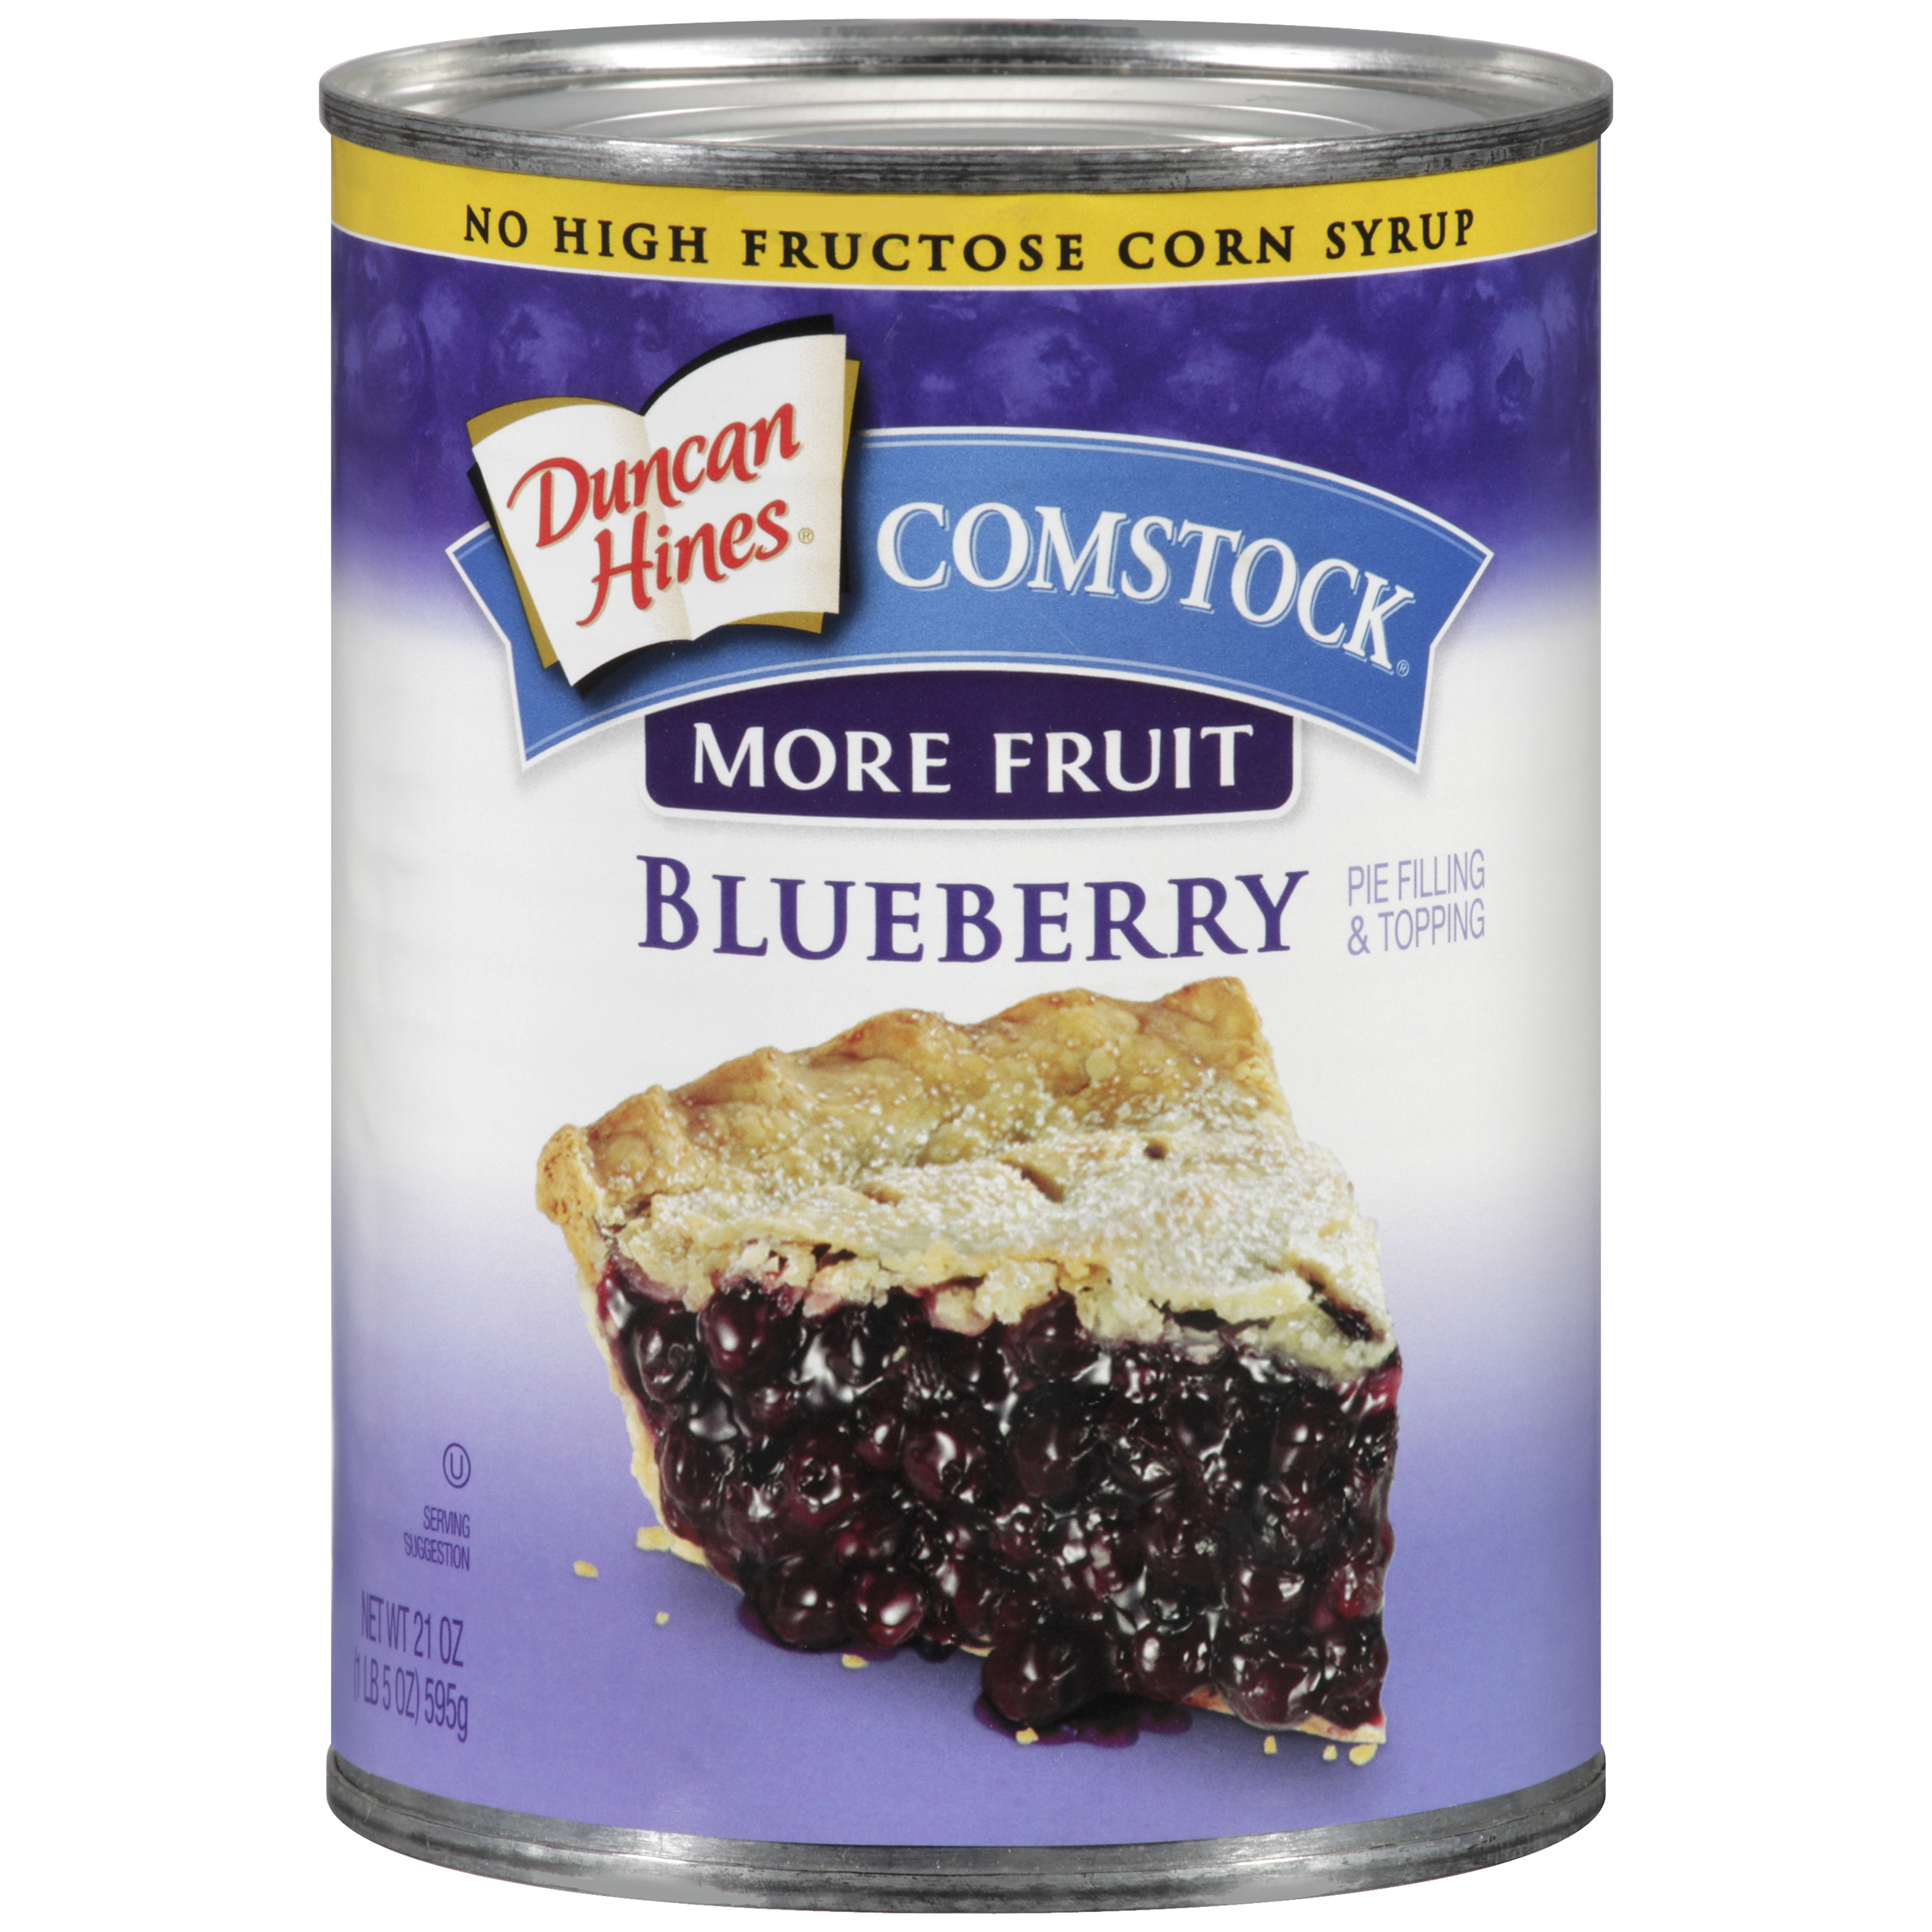 Duncan Hines�� Comstock�� Blueberry Pie Filling & Topping 21 oz. Can.